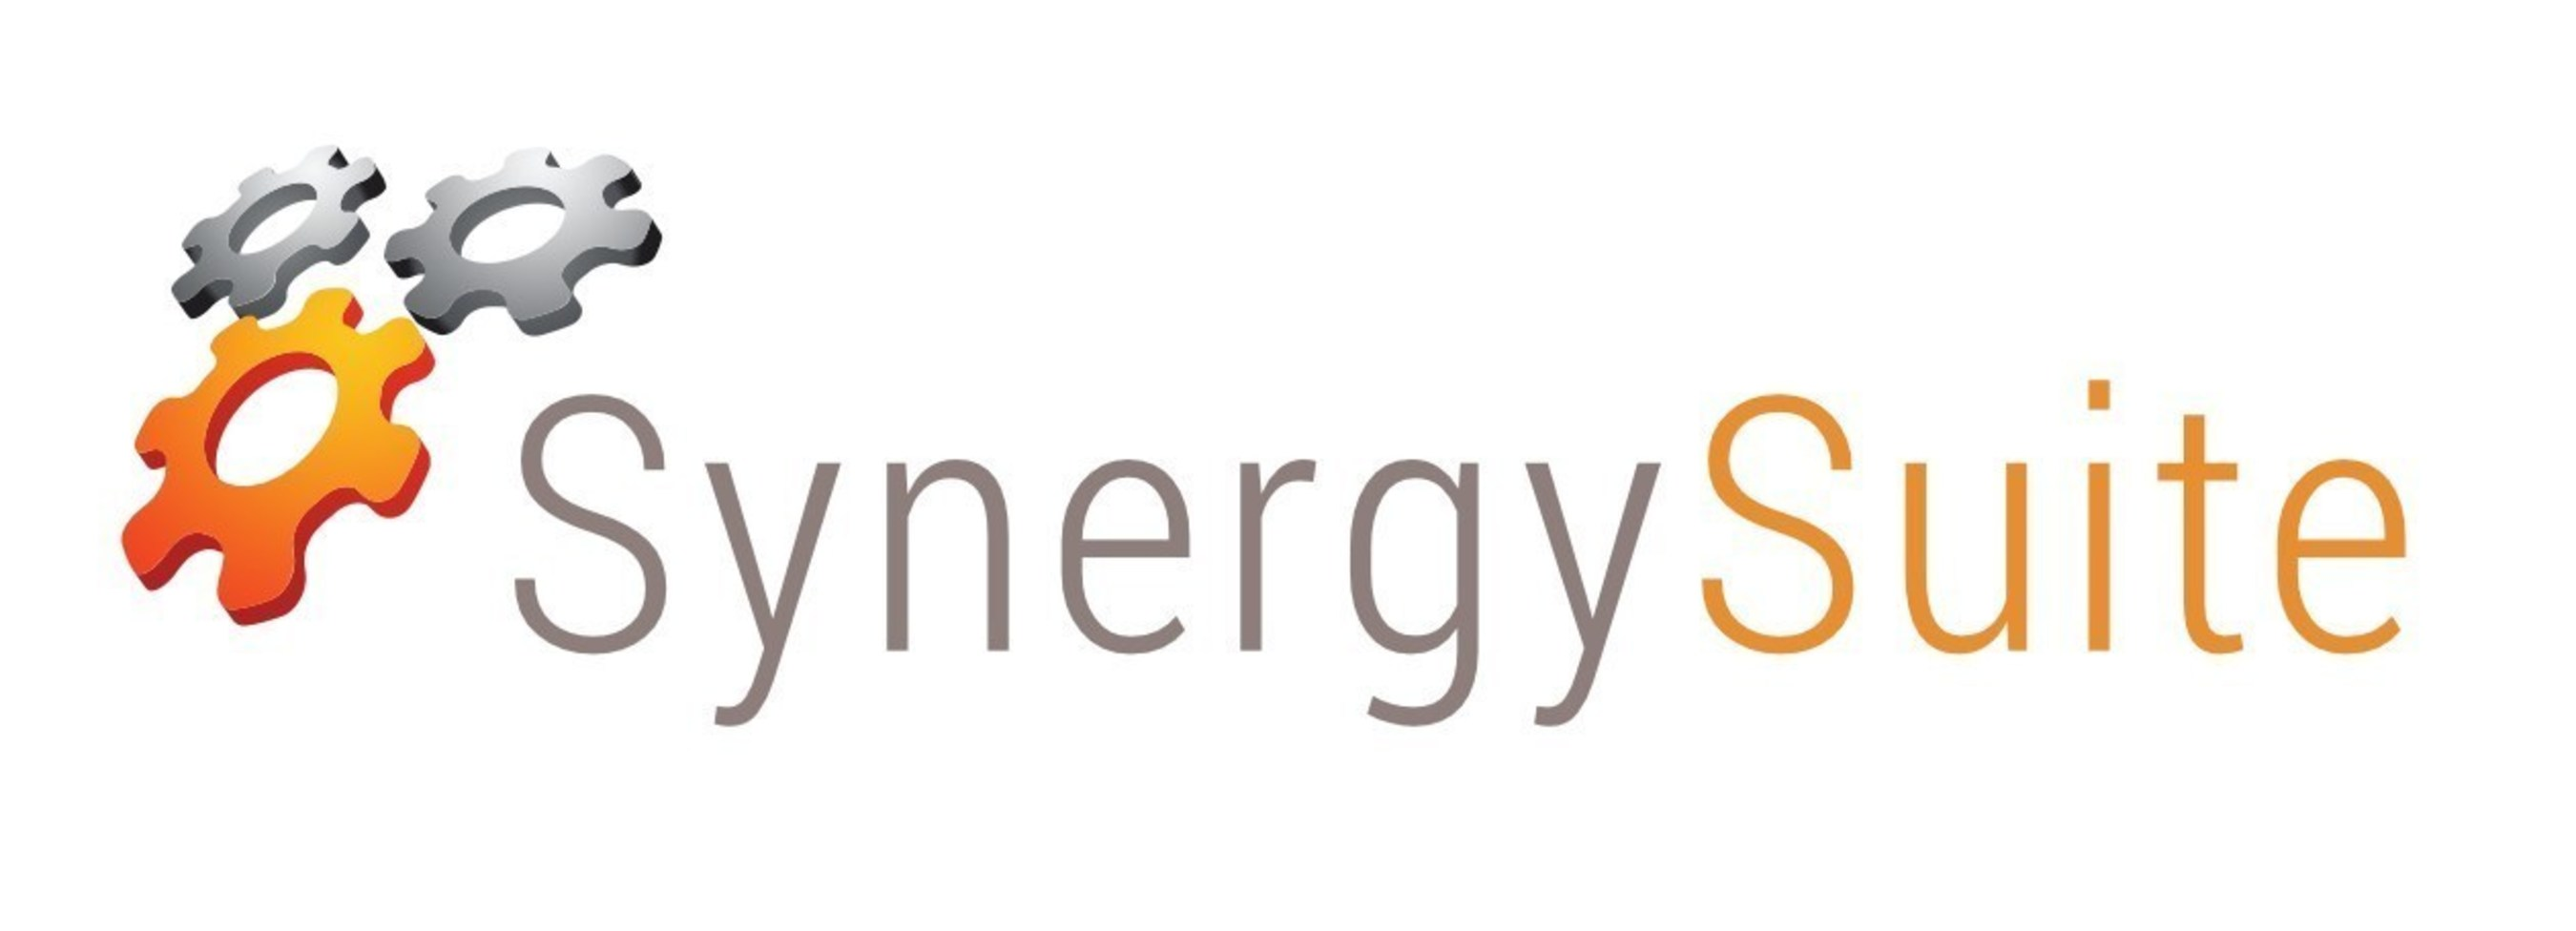 SynergySuite Raises Investment to Bring Next-Gen Hospitality Technology to Food and Beverage Chains in the U.S.